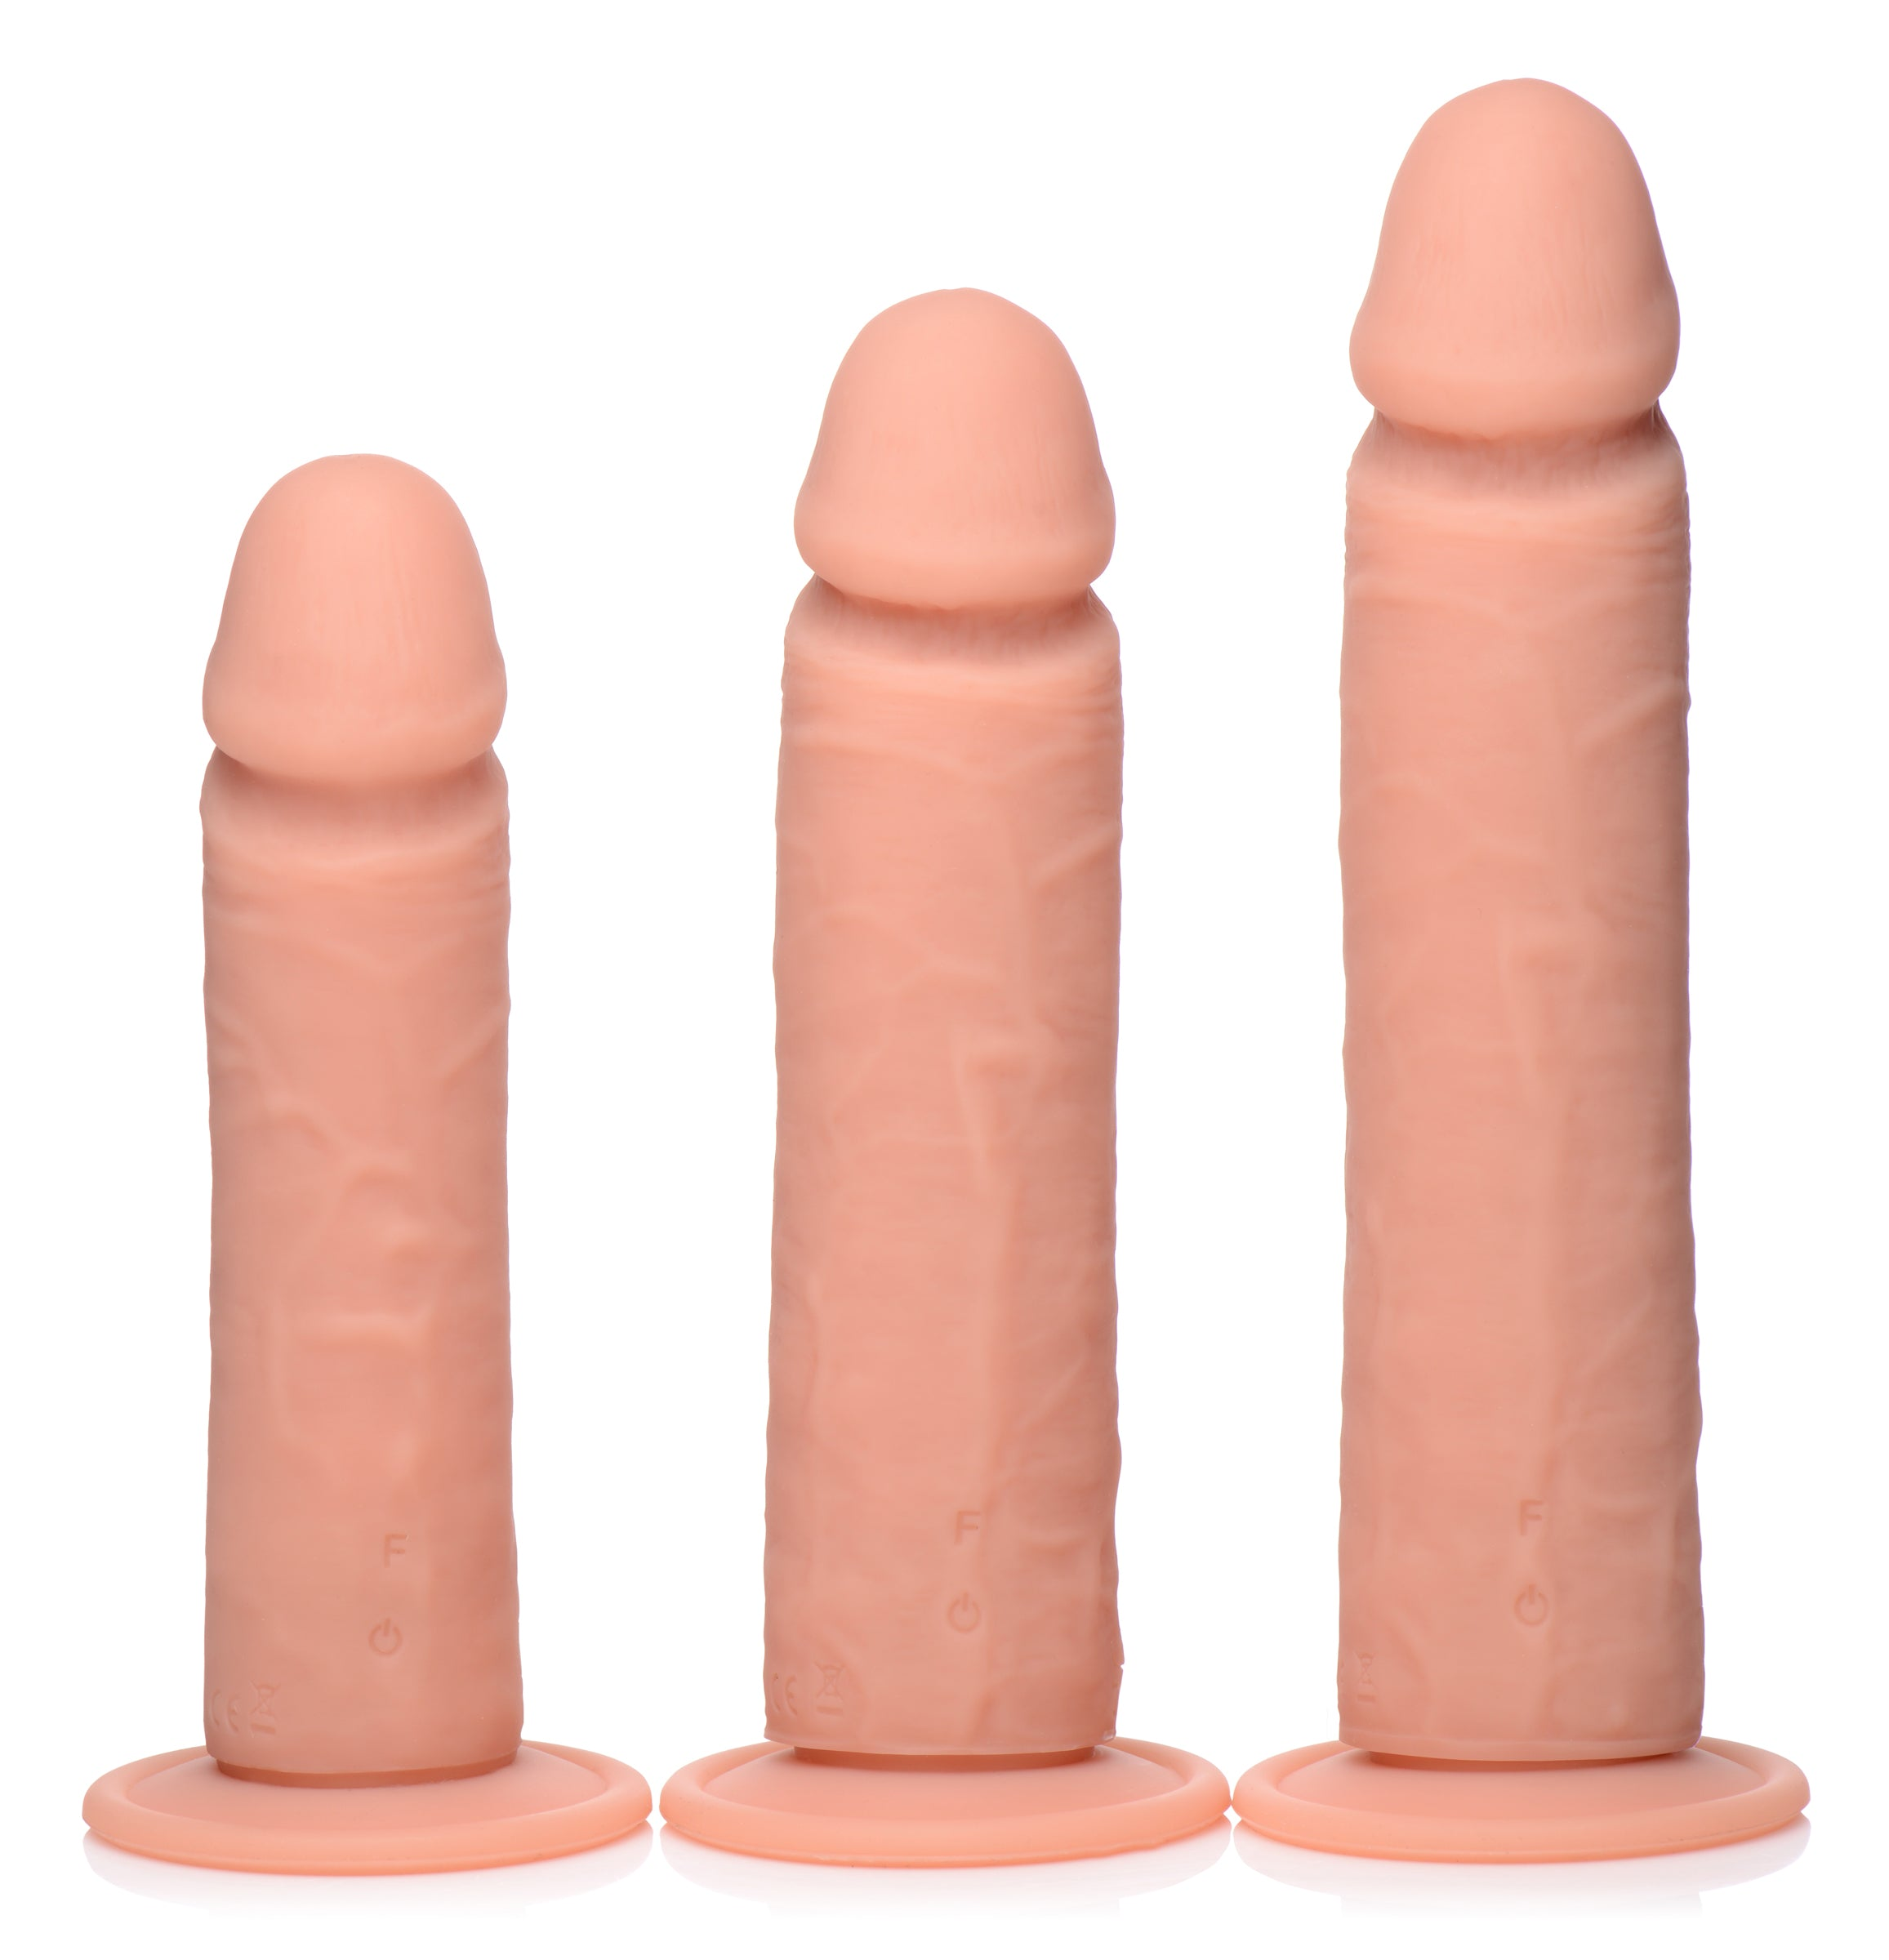 Big Shot Vibrating Remote Control Silicone Dildo